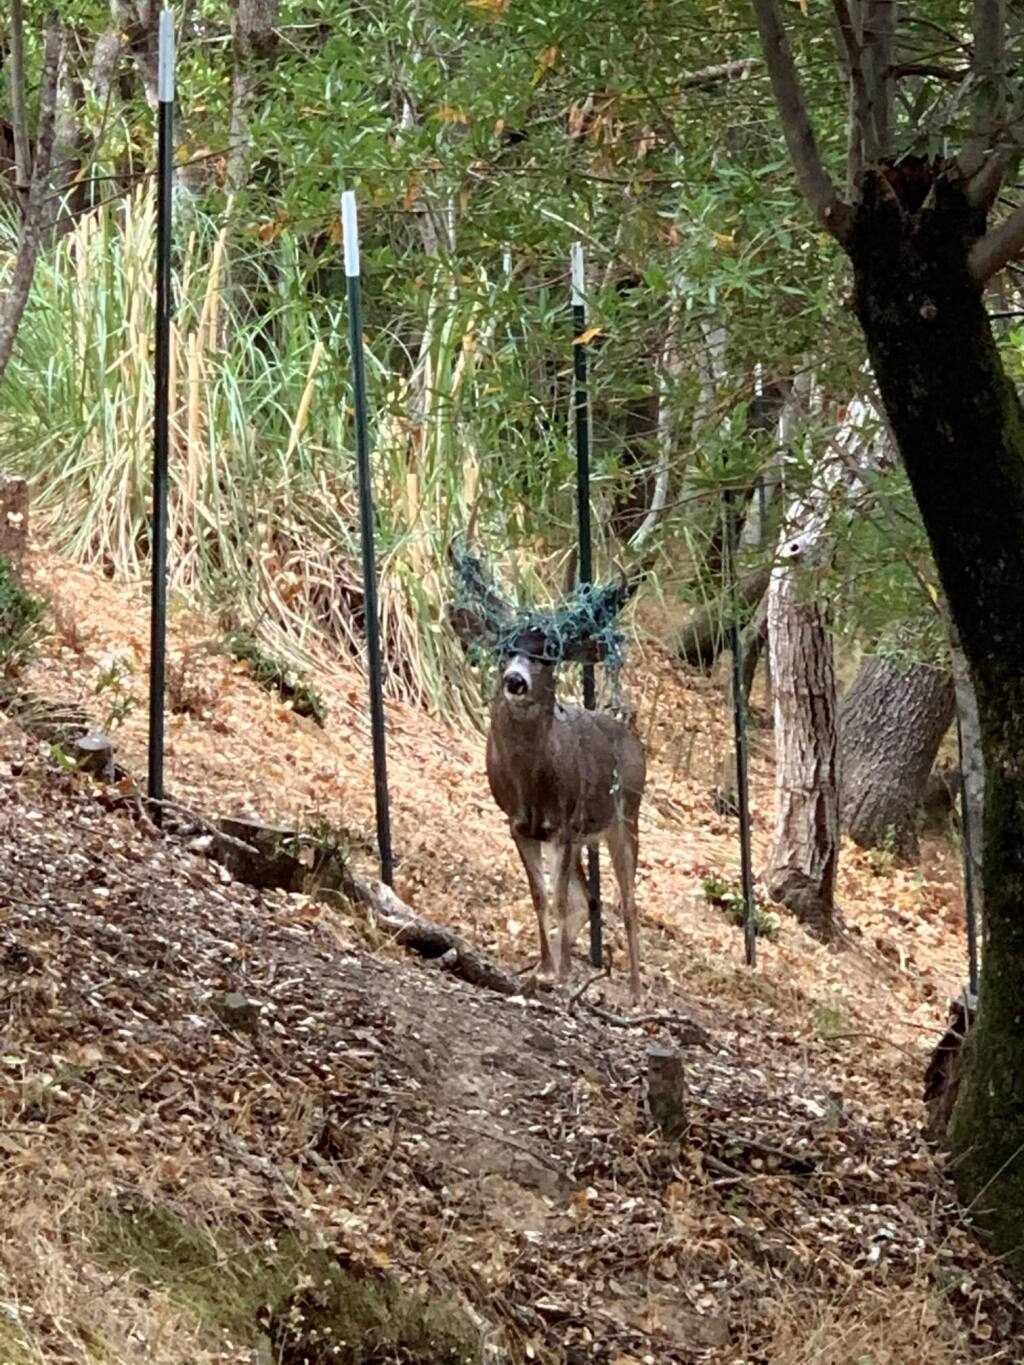 The Marin Humane Society spotted a buck with Christmas lights tangled in his antlers the week of Thanksgiving. Because bucks are hard to catch, the decorations will remain on the animal's antlers until they shed this winter. (Marin Humane/Facebook)